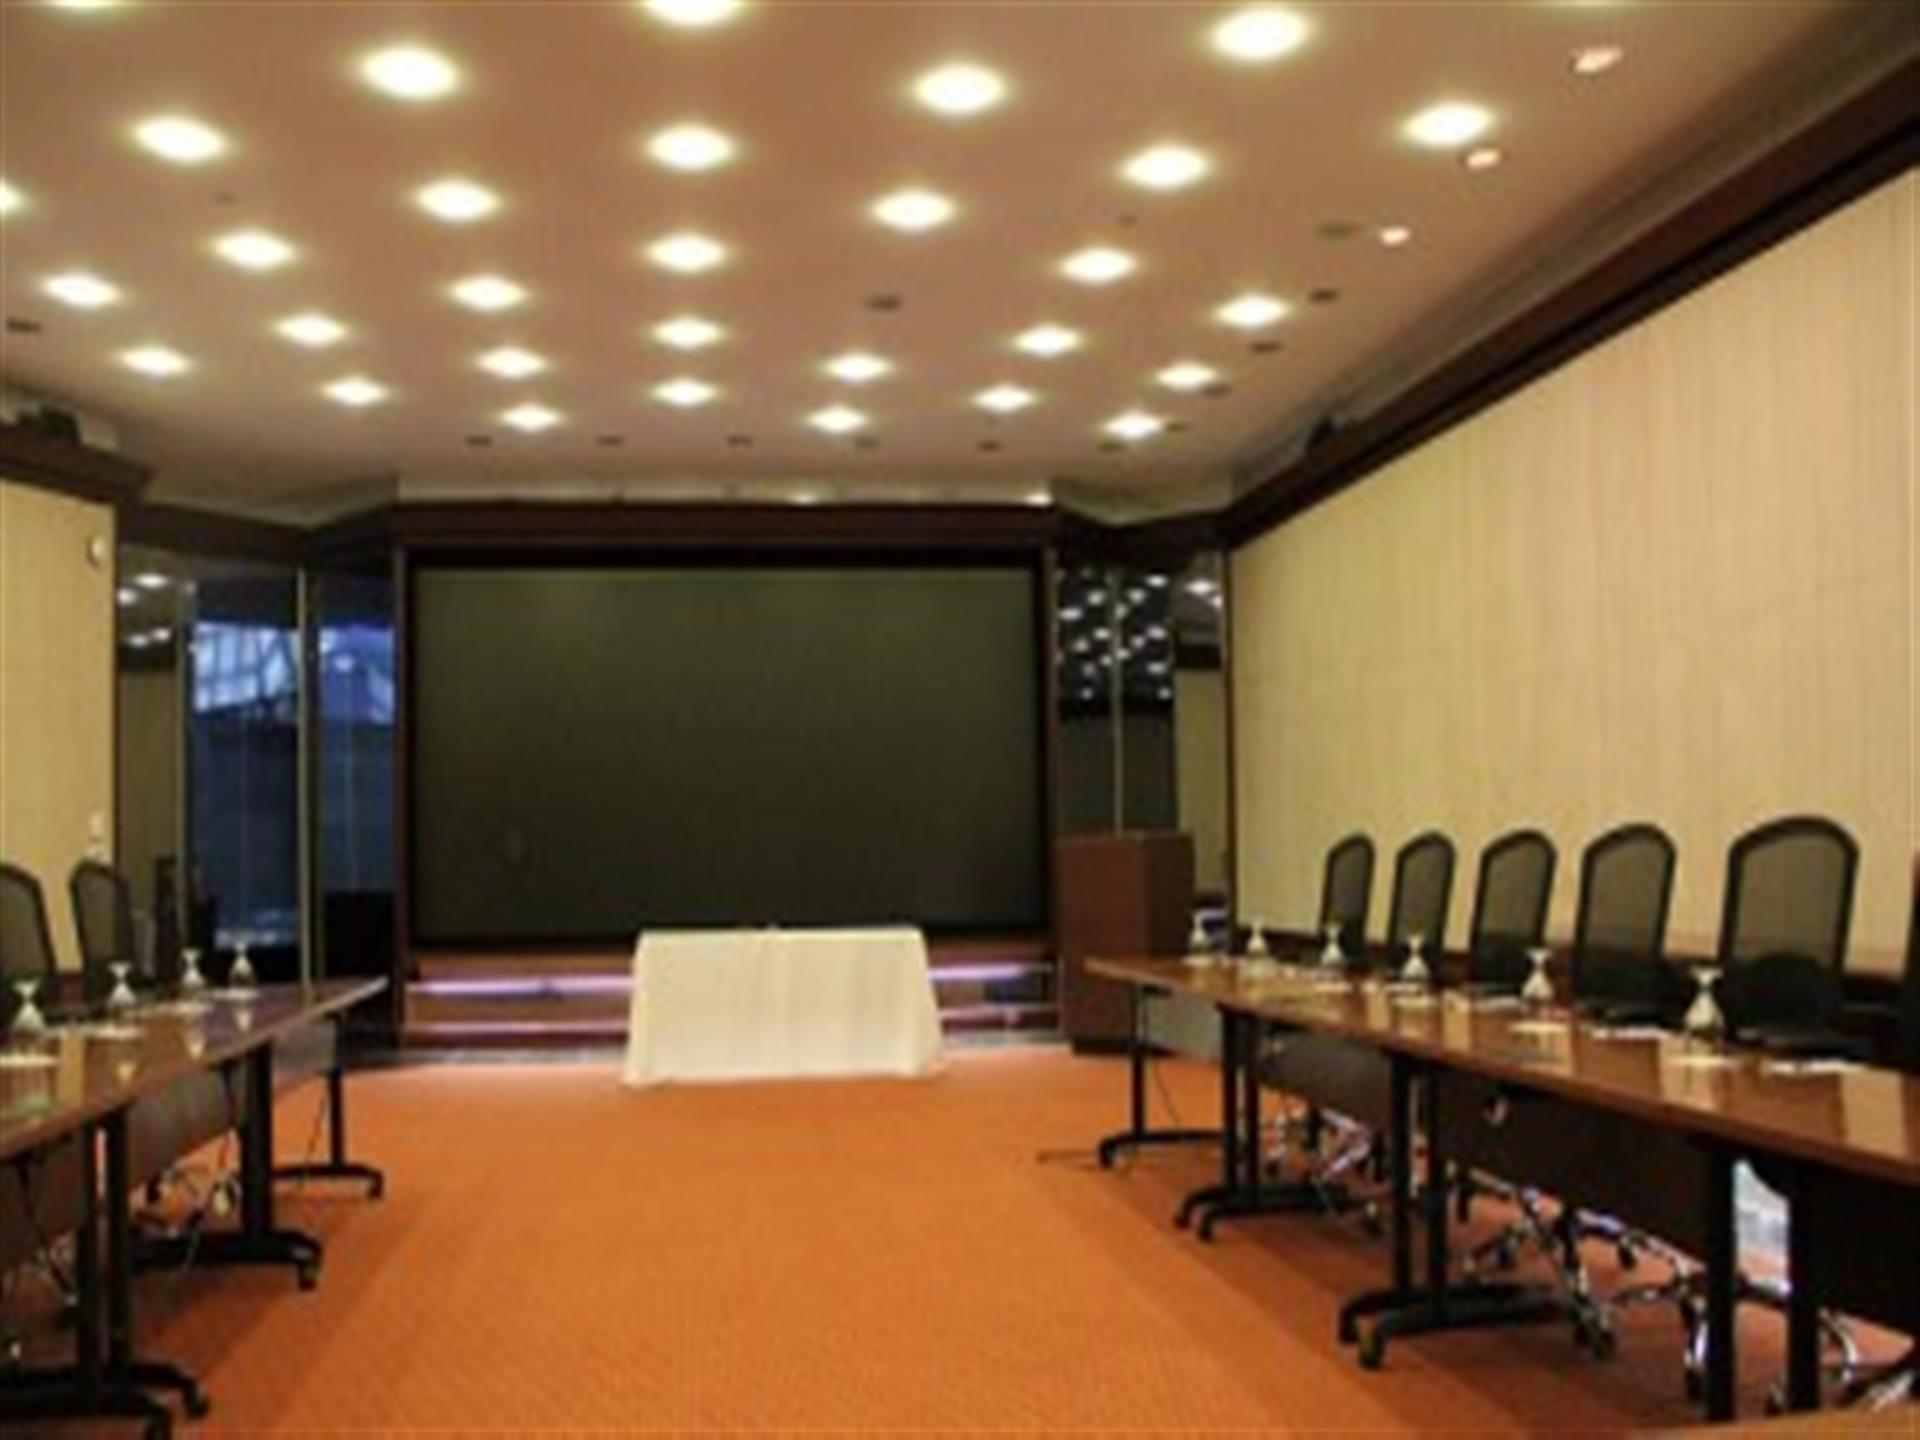 Presentation room with long tables and chairs